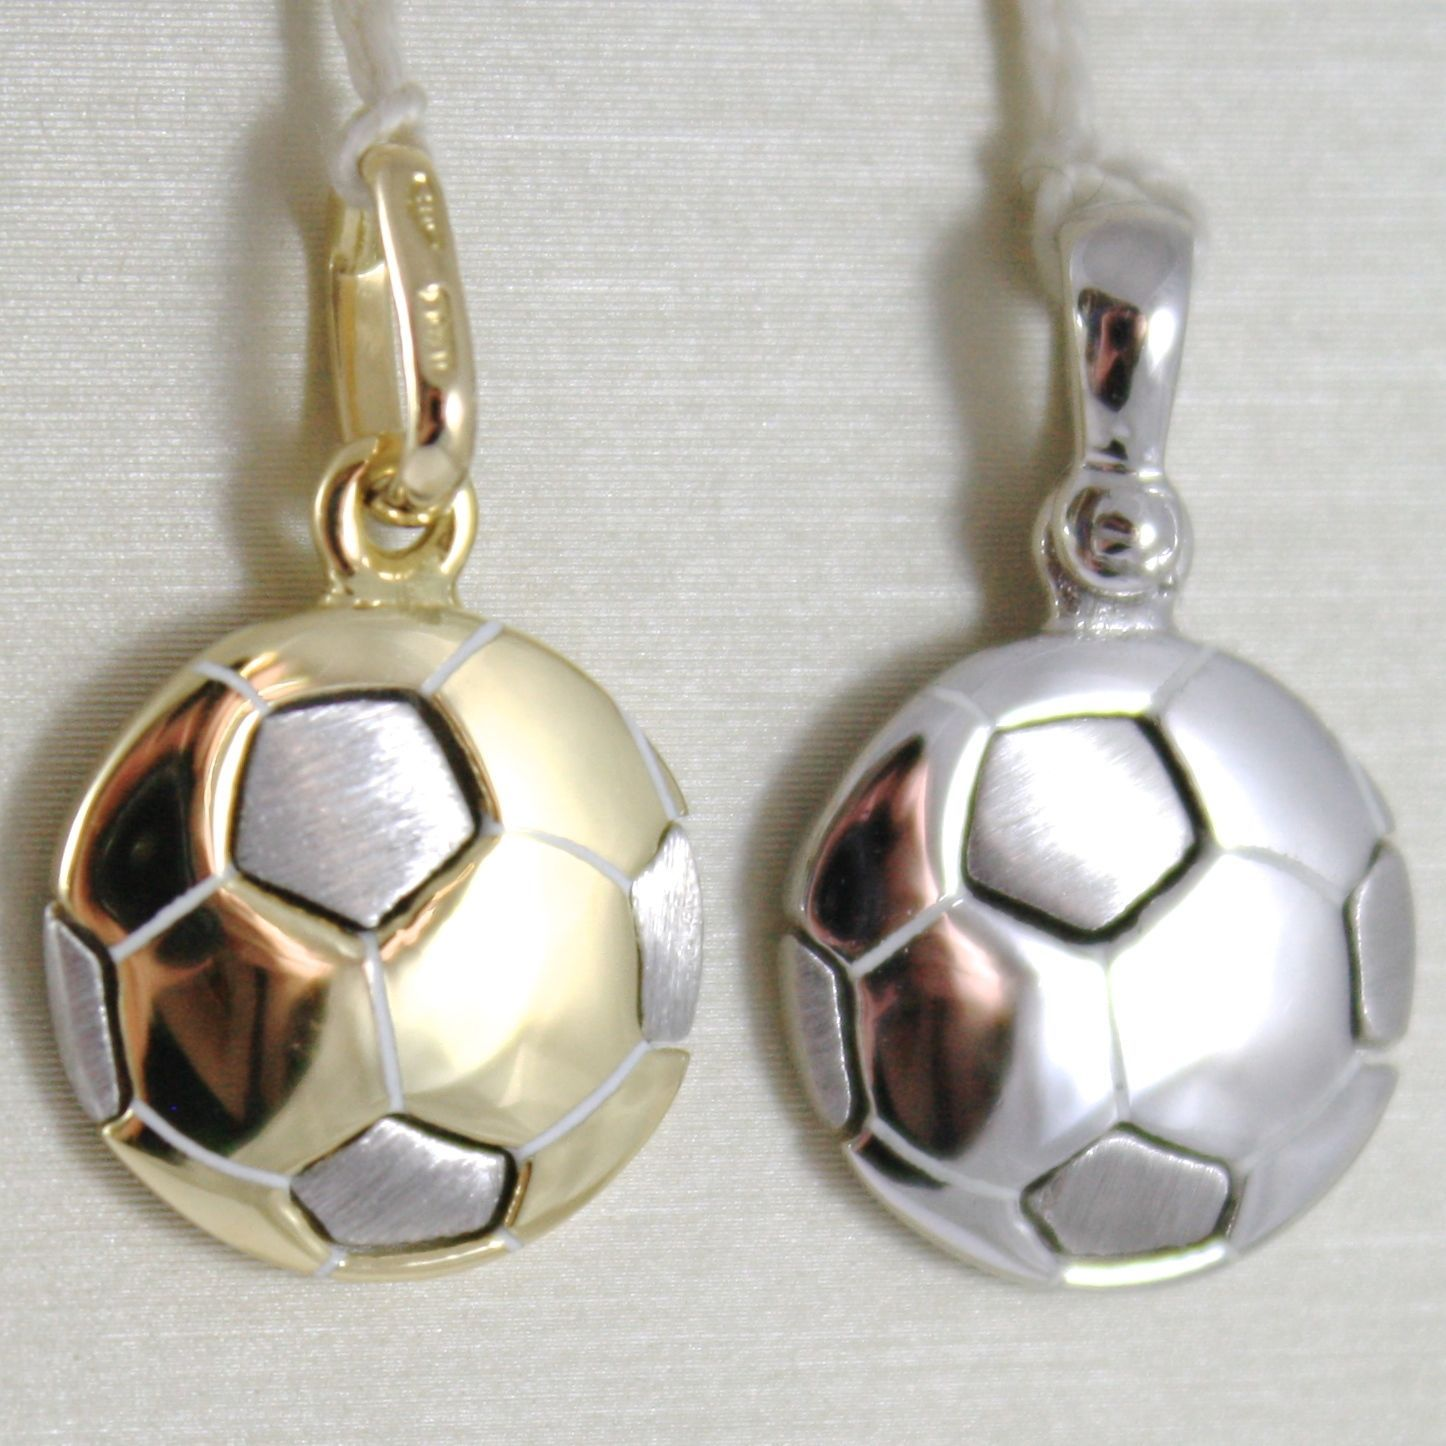 PENDENTIF EN OR JAUNE OU BLANC 750 18K,PALLONE DU FOOTBALL,SOLIDE,MADE IN ITALY